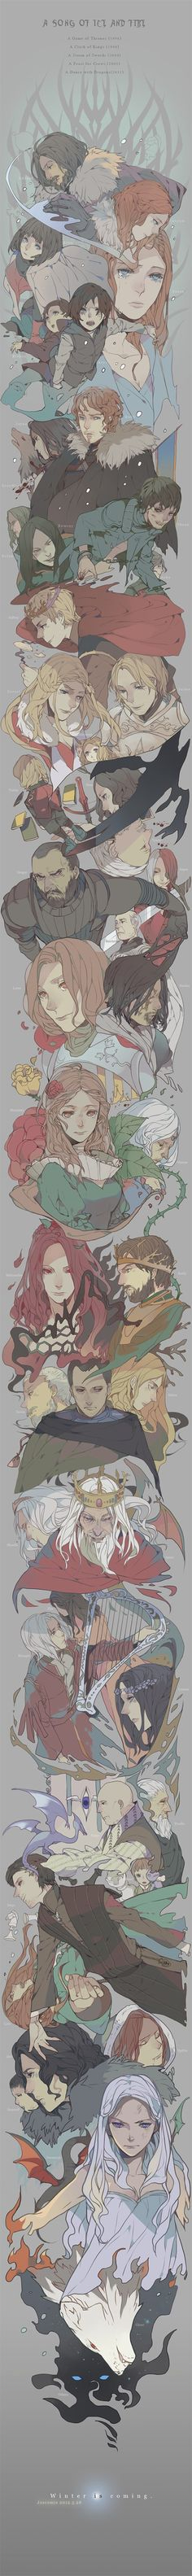 Epic GAME OF THRONES Anime Style Scroll Art - News - GeekTyrant